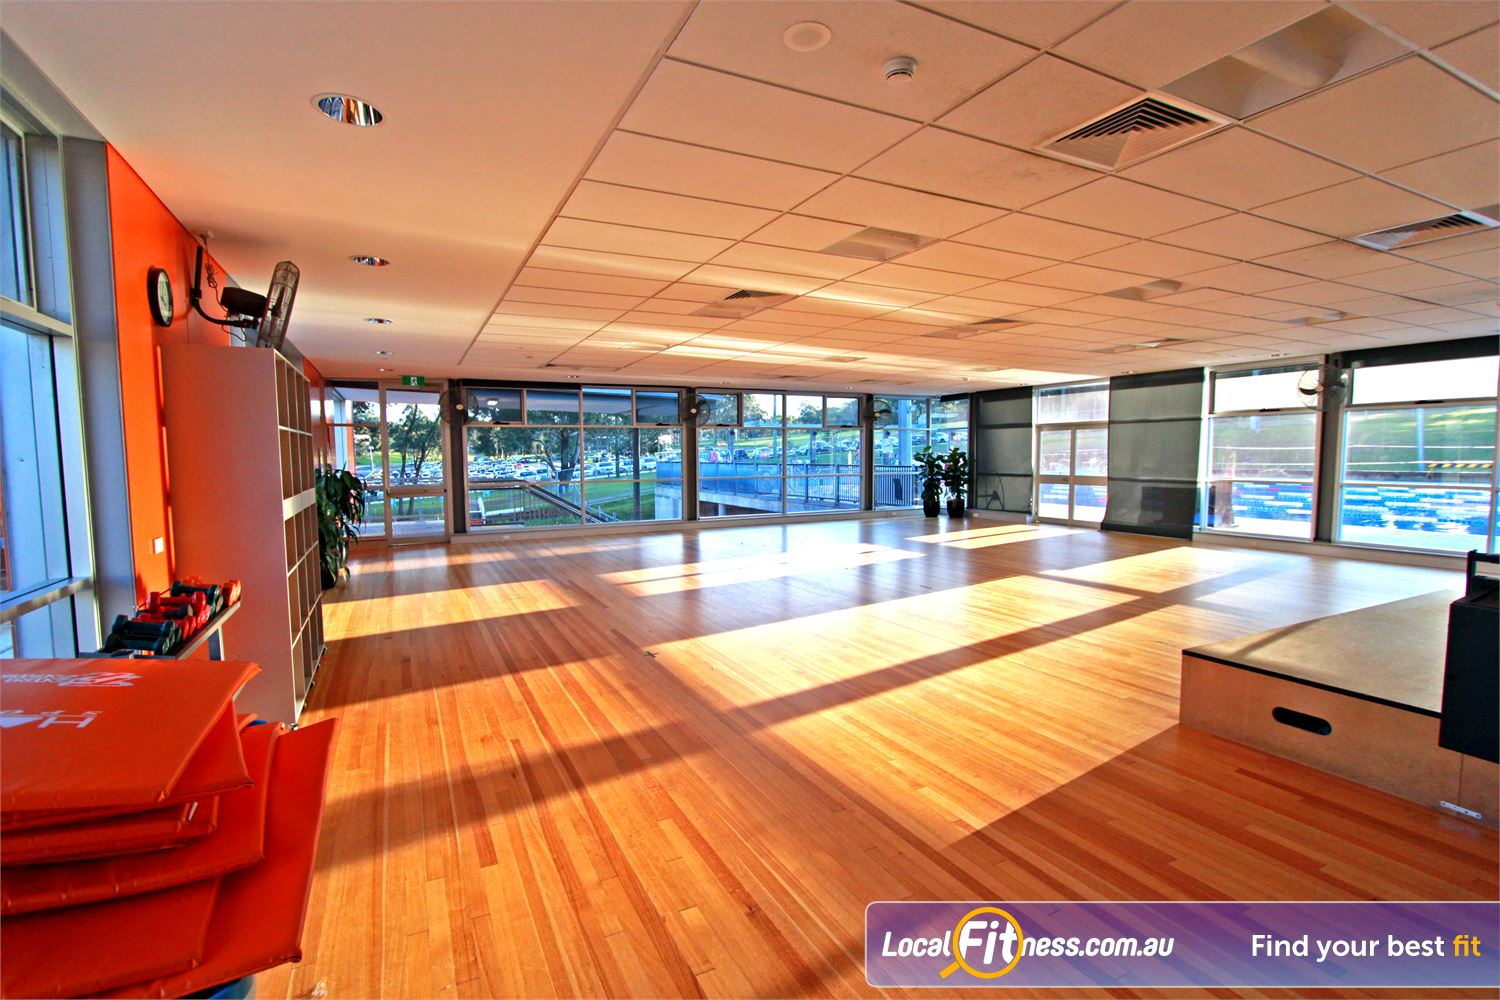 Macquarie University Sport & Aquatic Centre Near North Ryde Join in on your favourite Macquarie Park Yoga, Pilates and Zumba classes.